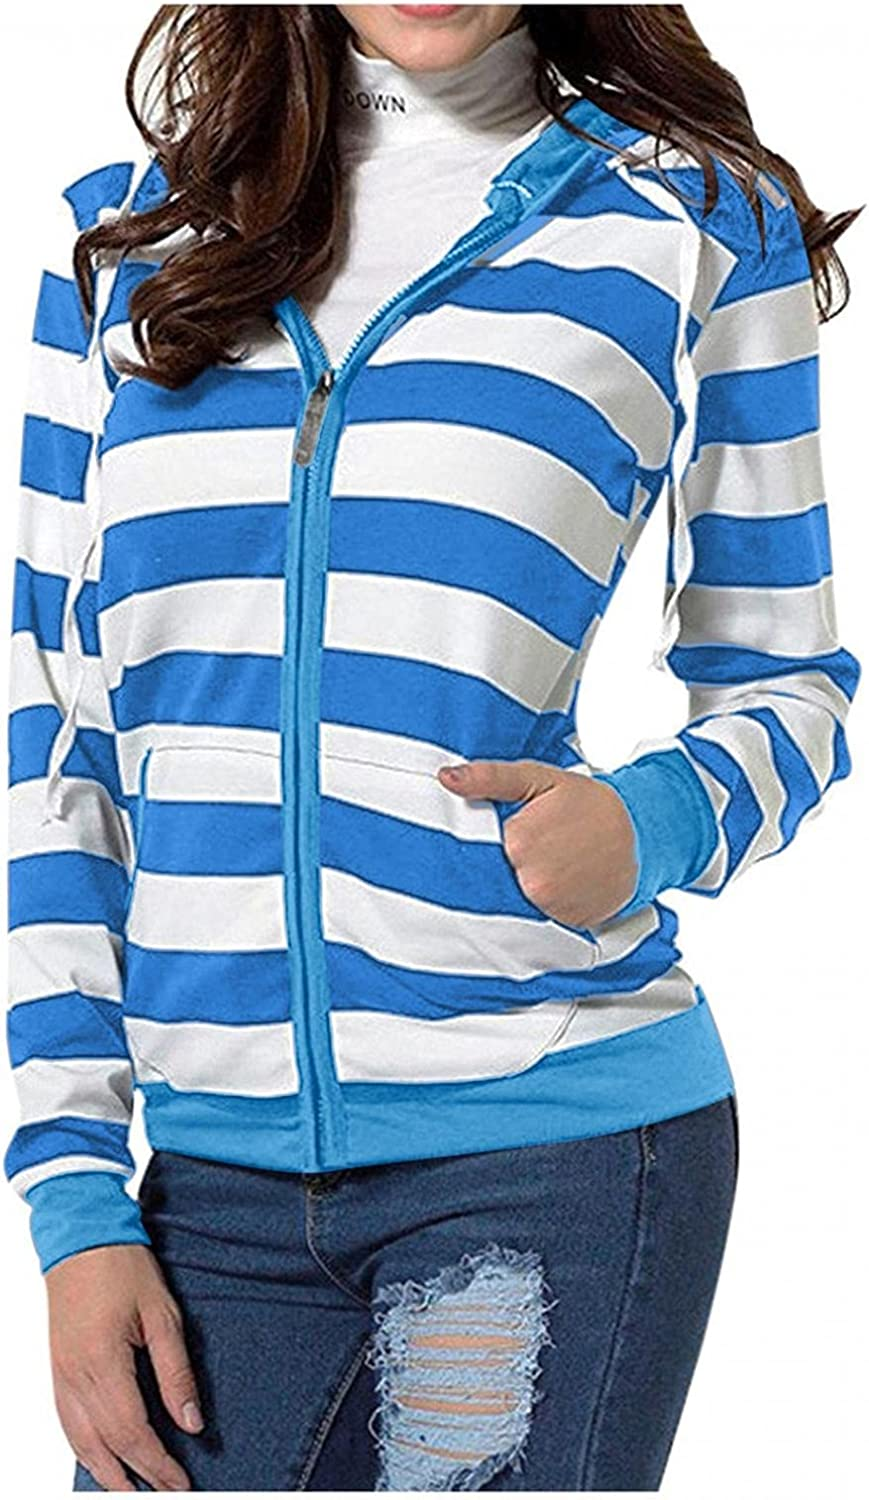 Haheyrte Hoodies for Womens Long Sleeve Stripe Print Zipper Outerwear Hooded Jacket Coats Casual Sweatshirts Pullover Tops